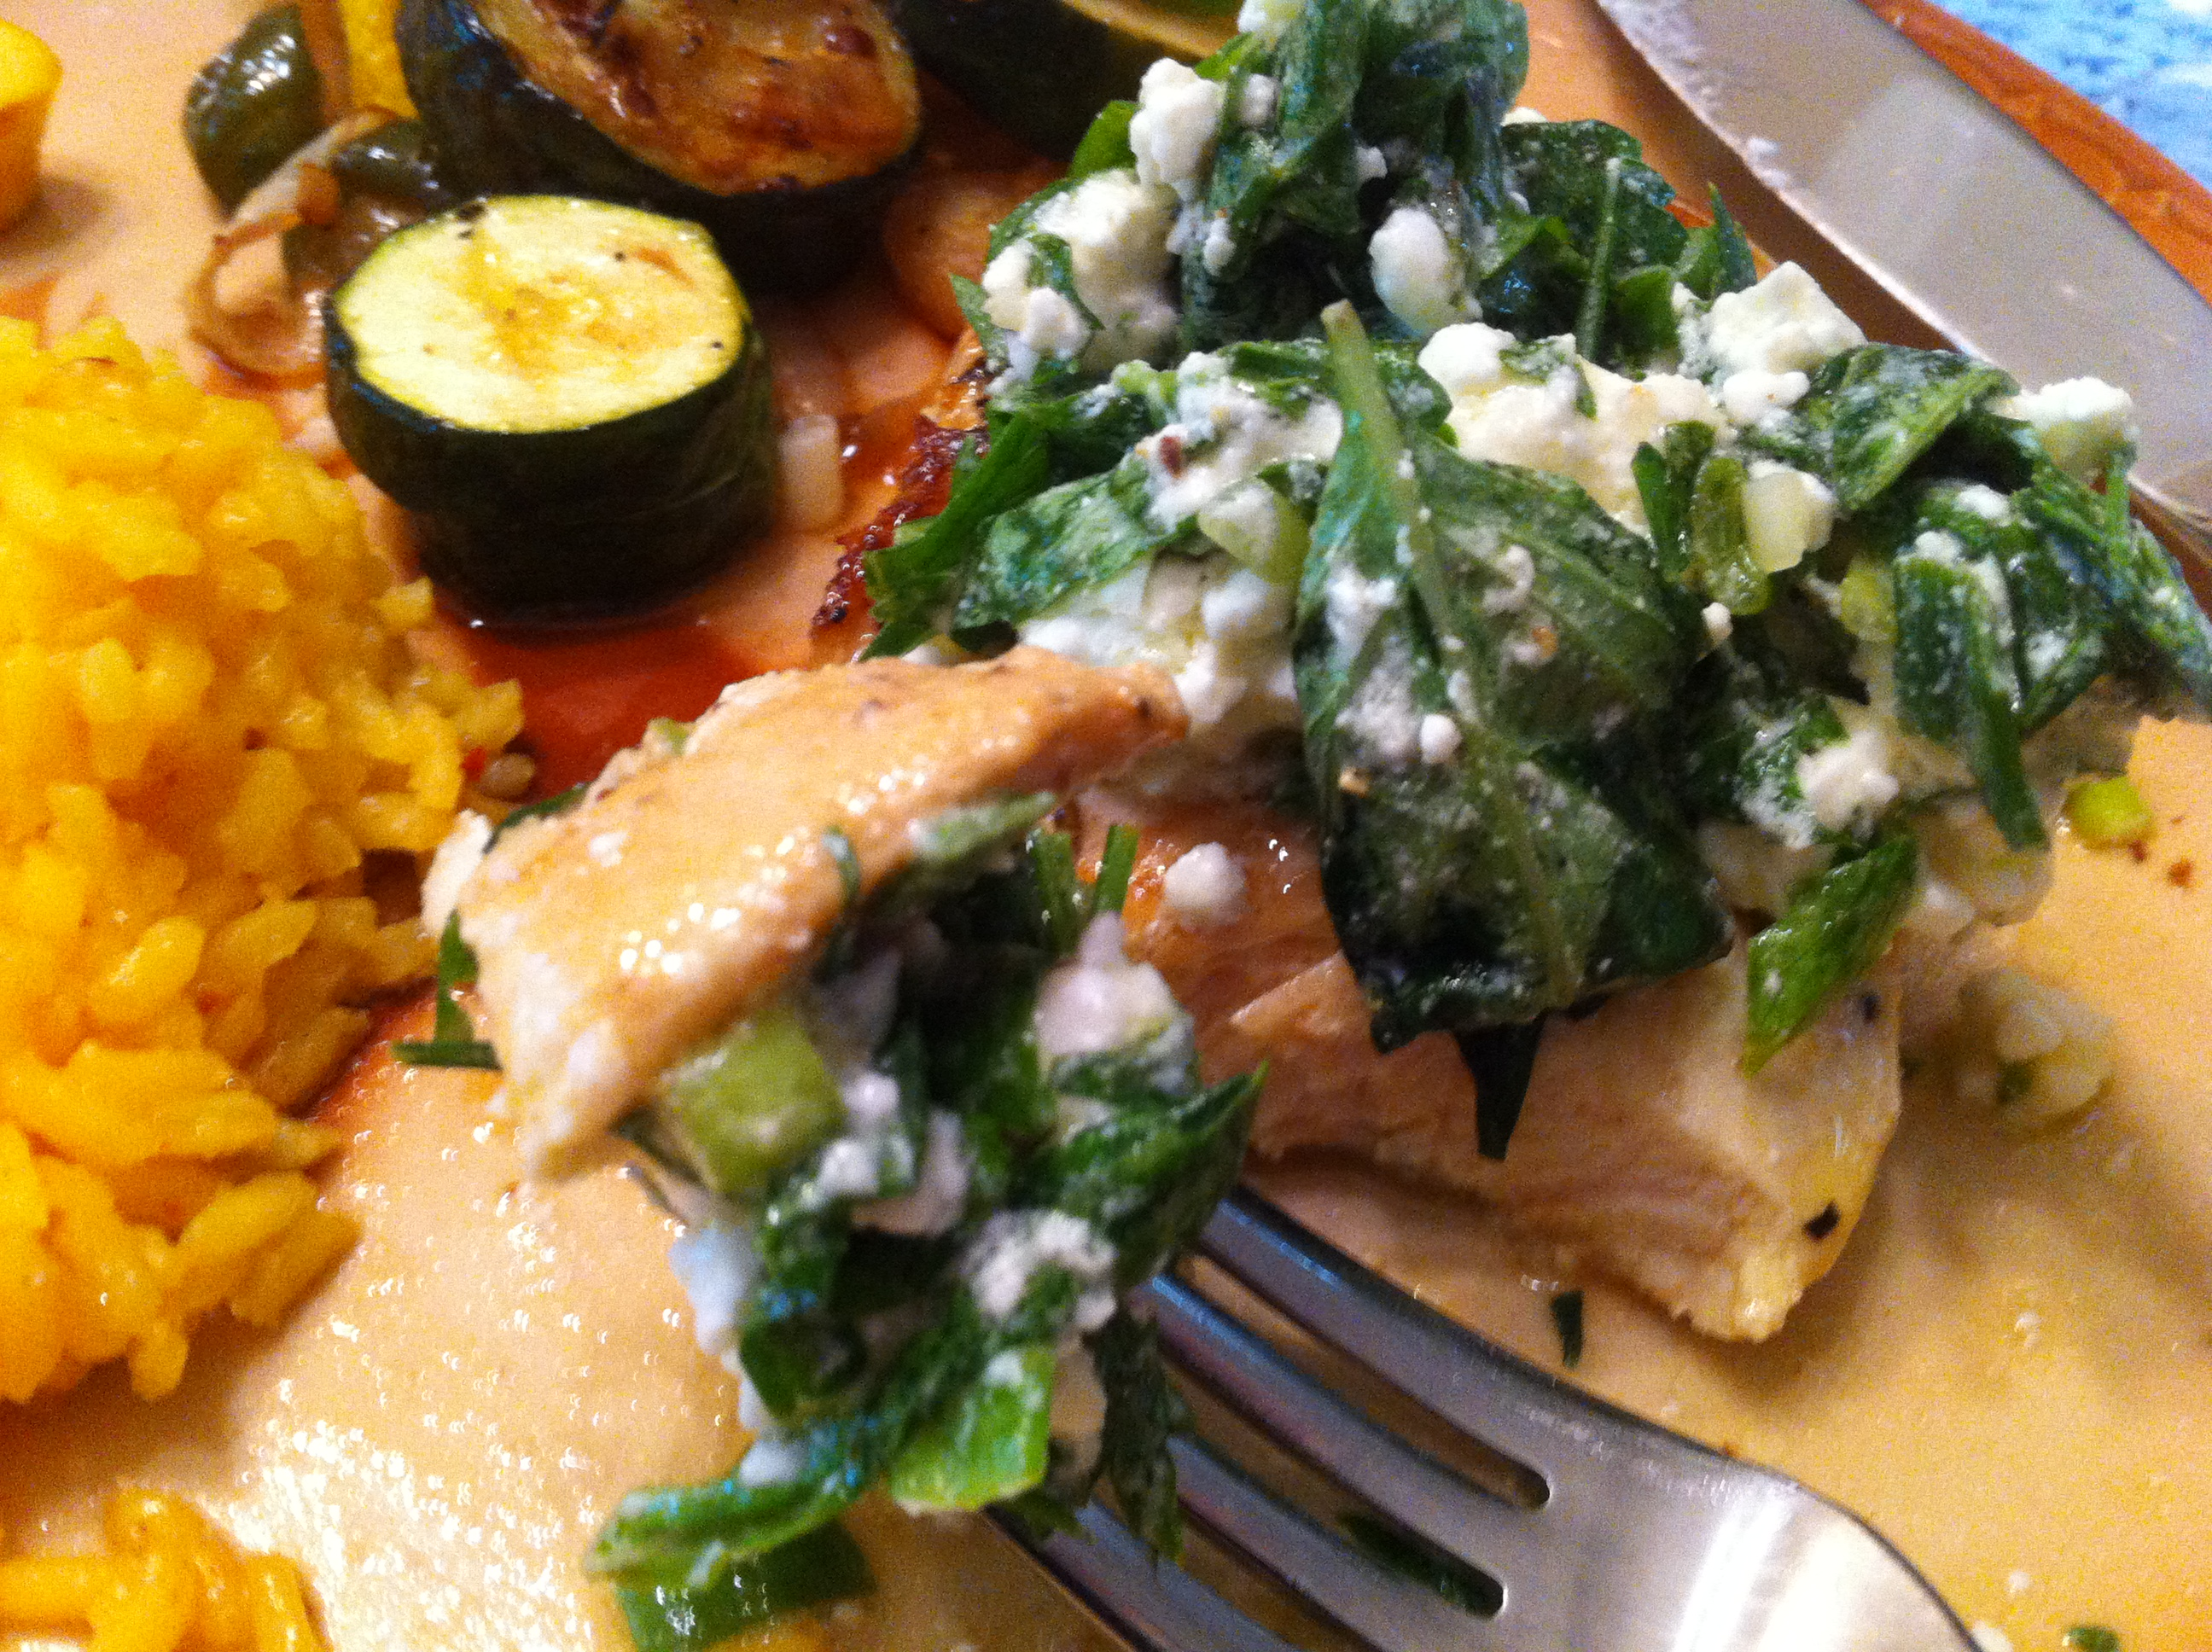 Throwback Thursday – Lemon Thyme Chicken with Feta Herb Salad